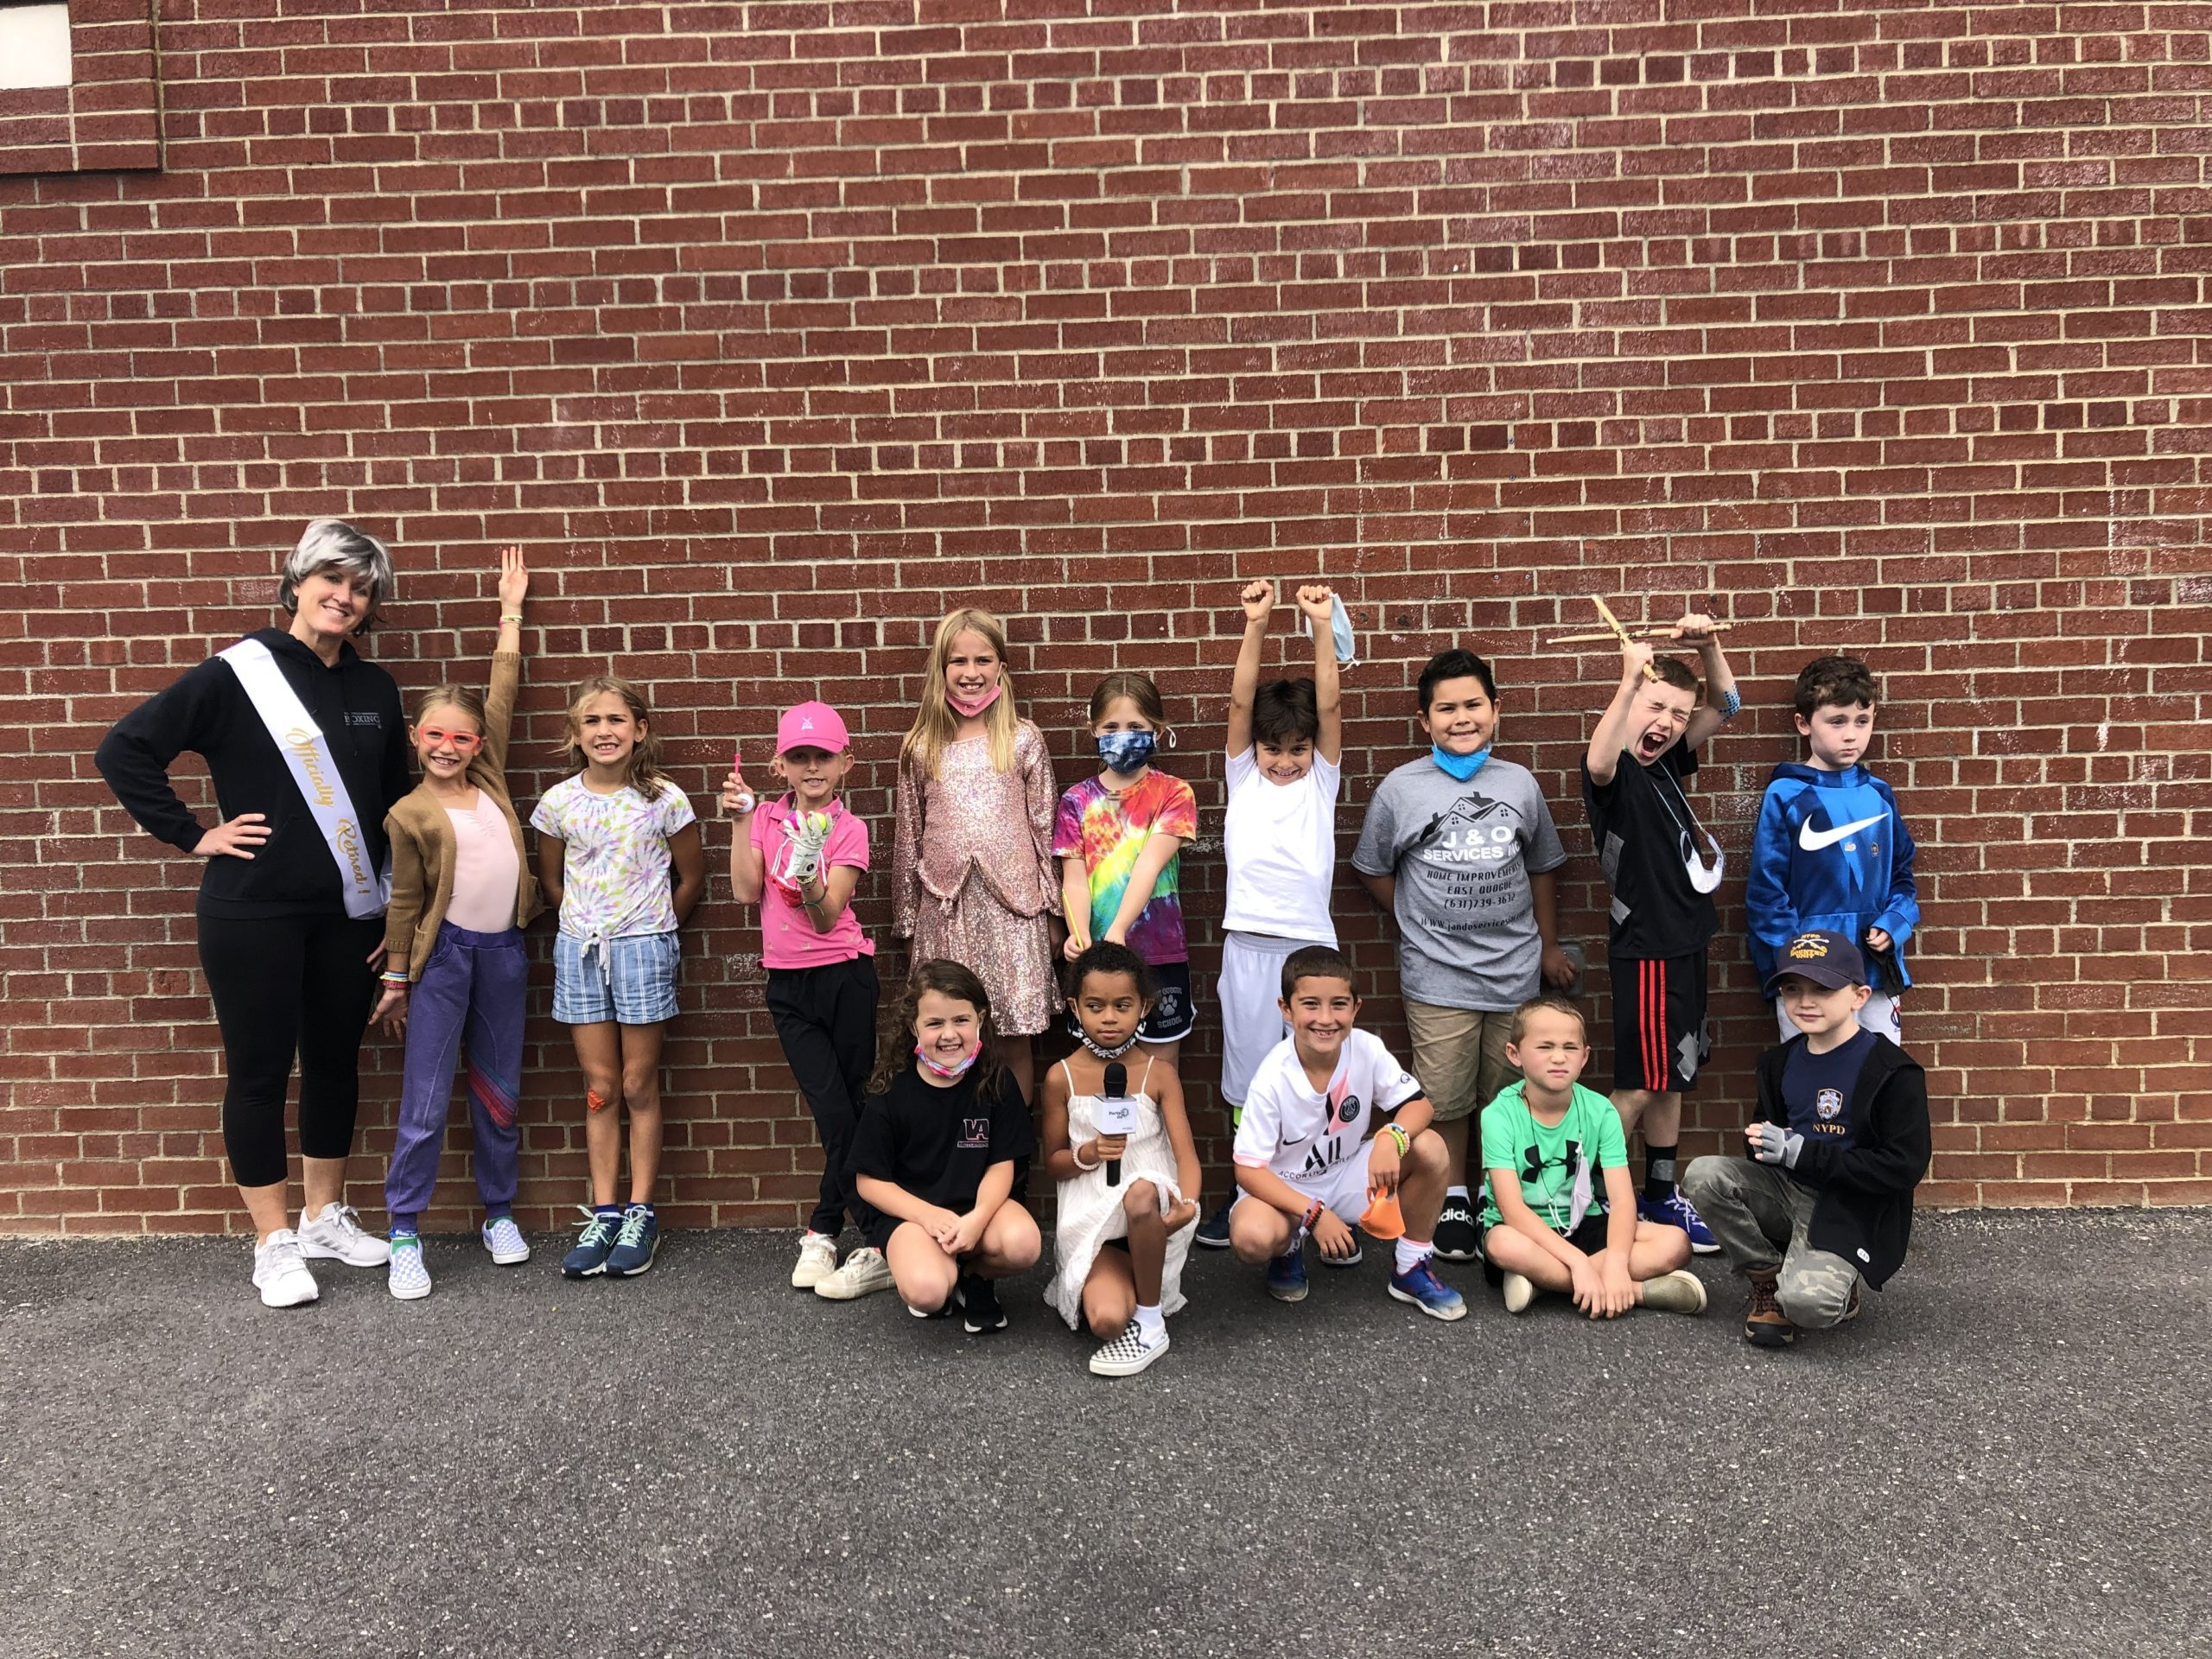 Students in Mrs. Squires's class at East Quogue School participated Wacky Wednesday last week, in which they took part in fun yet educational activities.